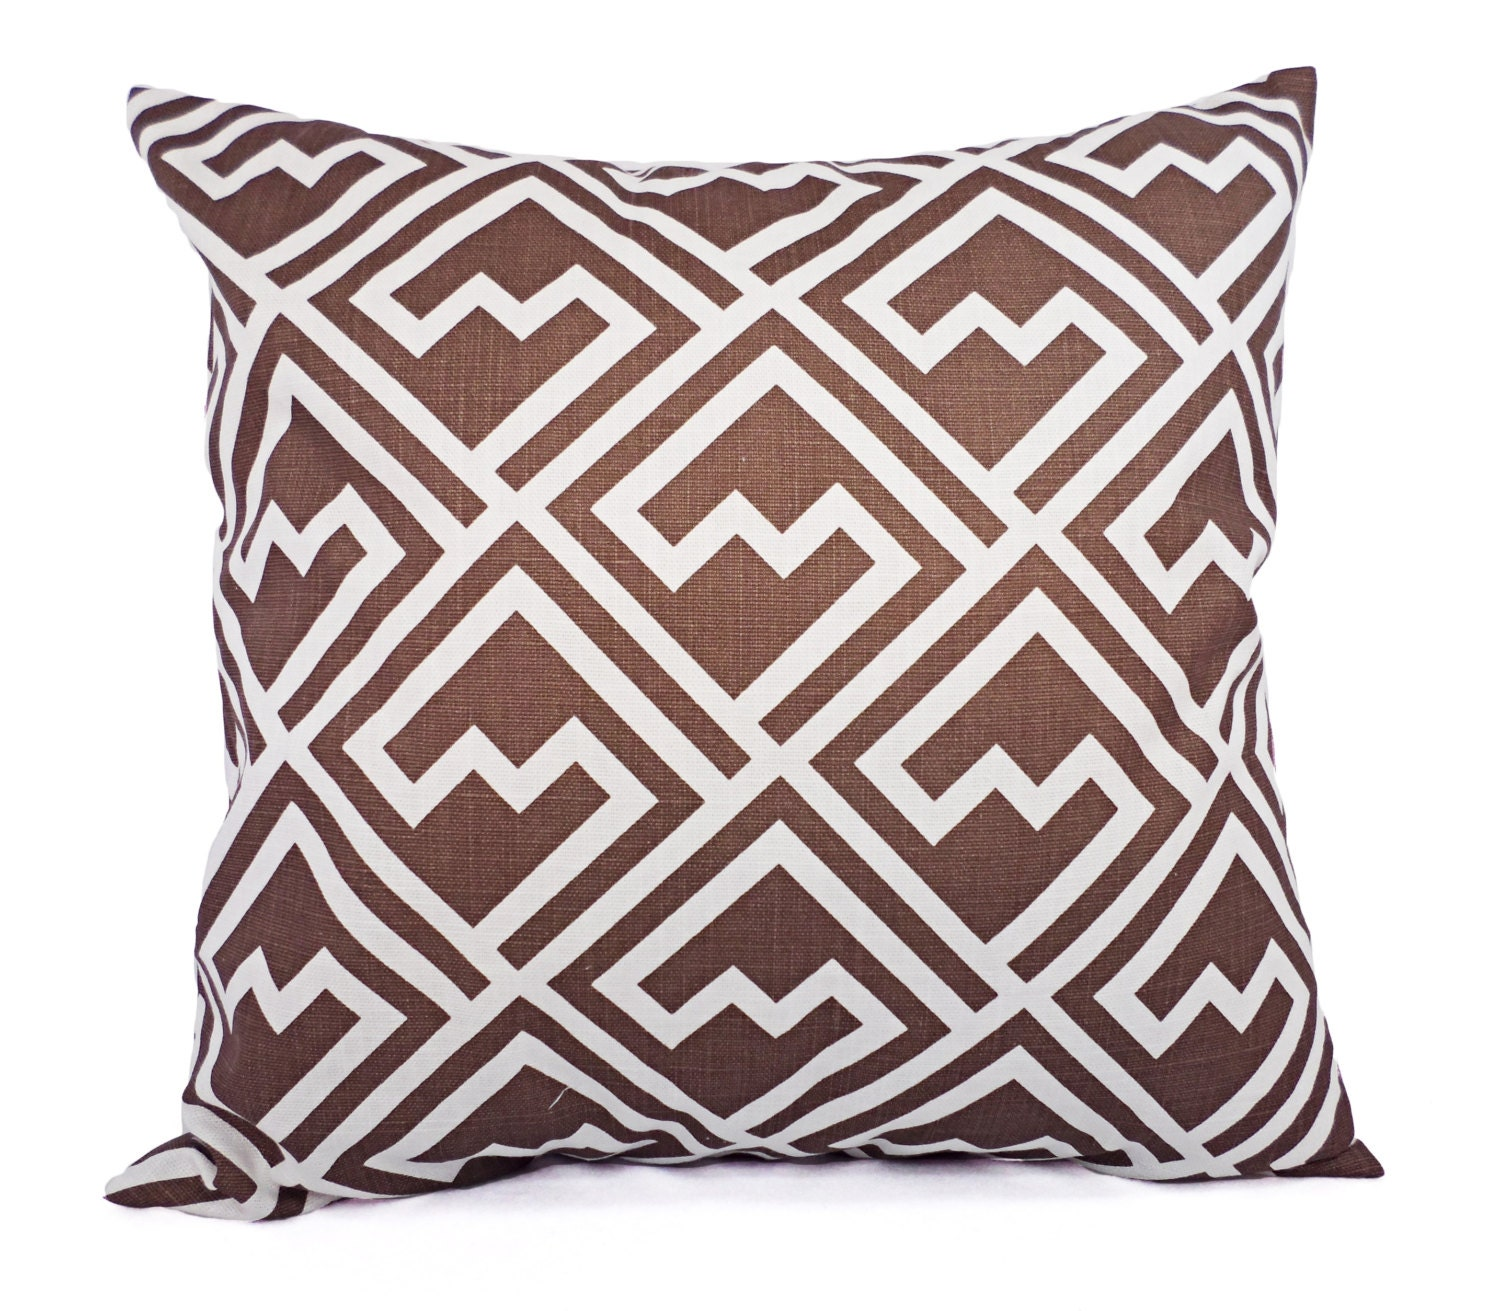 Throw Pillow Covers Brown : CLEARANCE One Brown Pillow Cover Brown Throw Pillow Cover